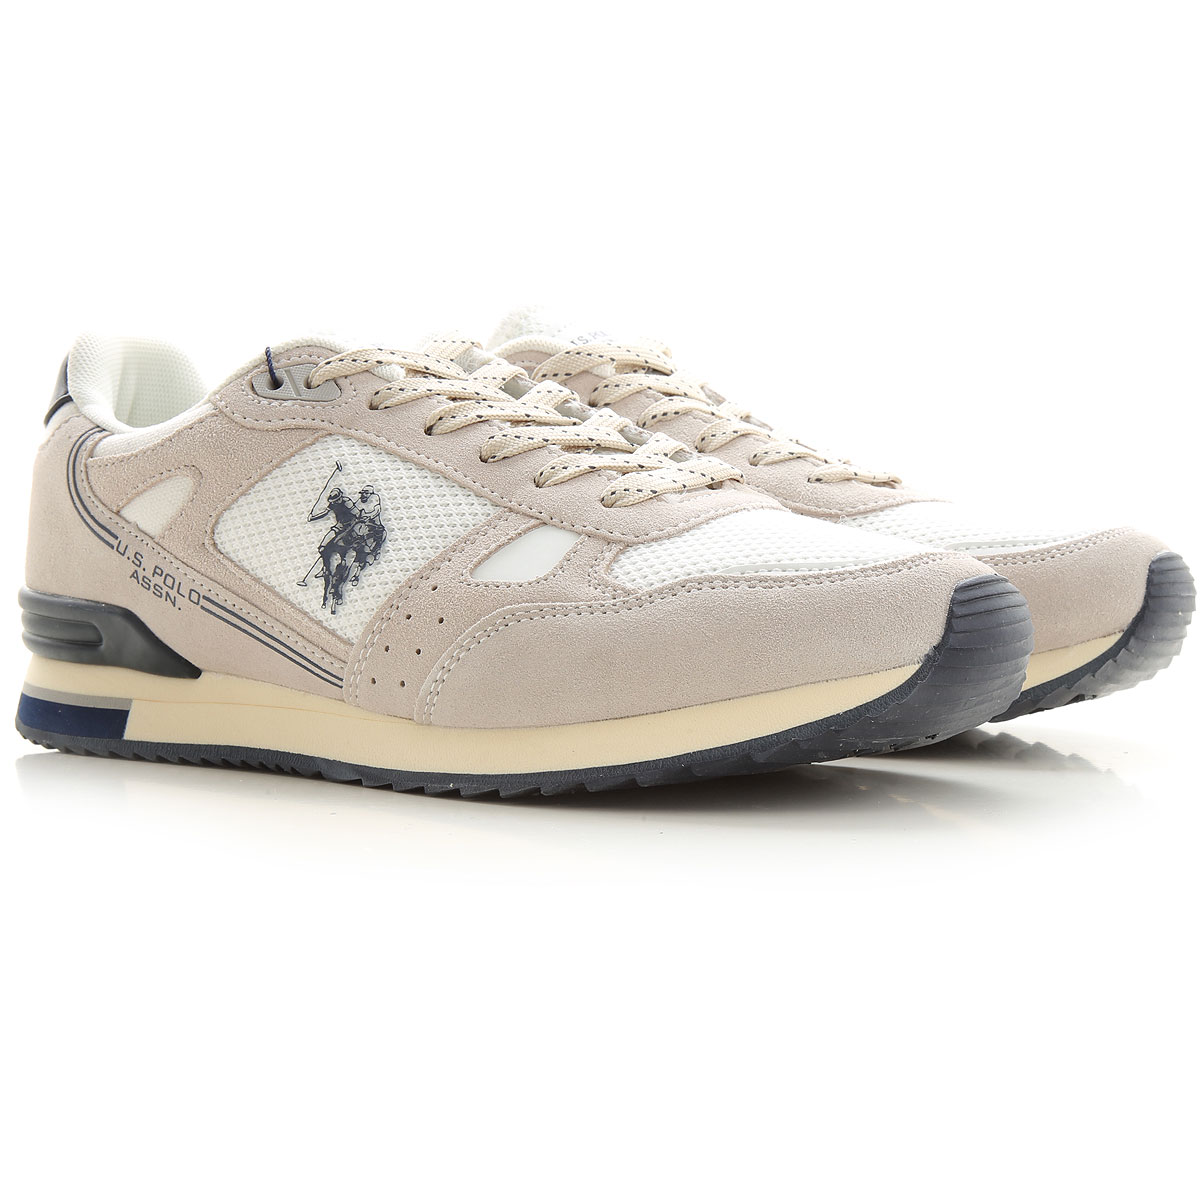 U.S. Polo Sneakers for Men On Sale in Outlet, White, Nylon Mesh, 2019, 8